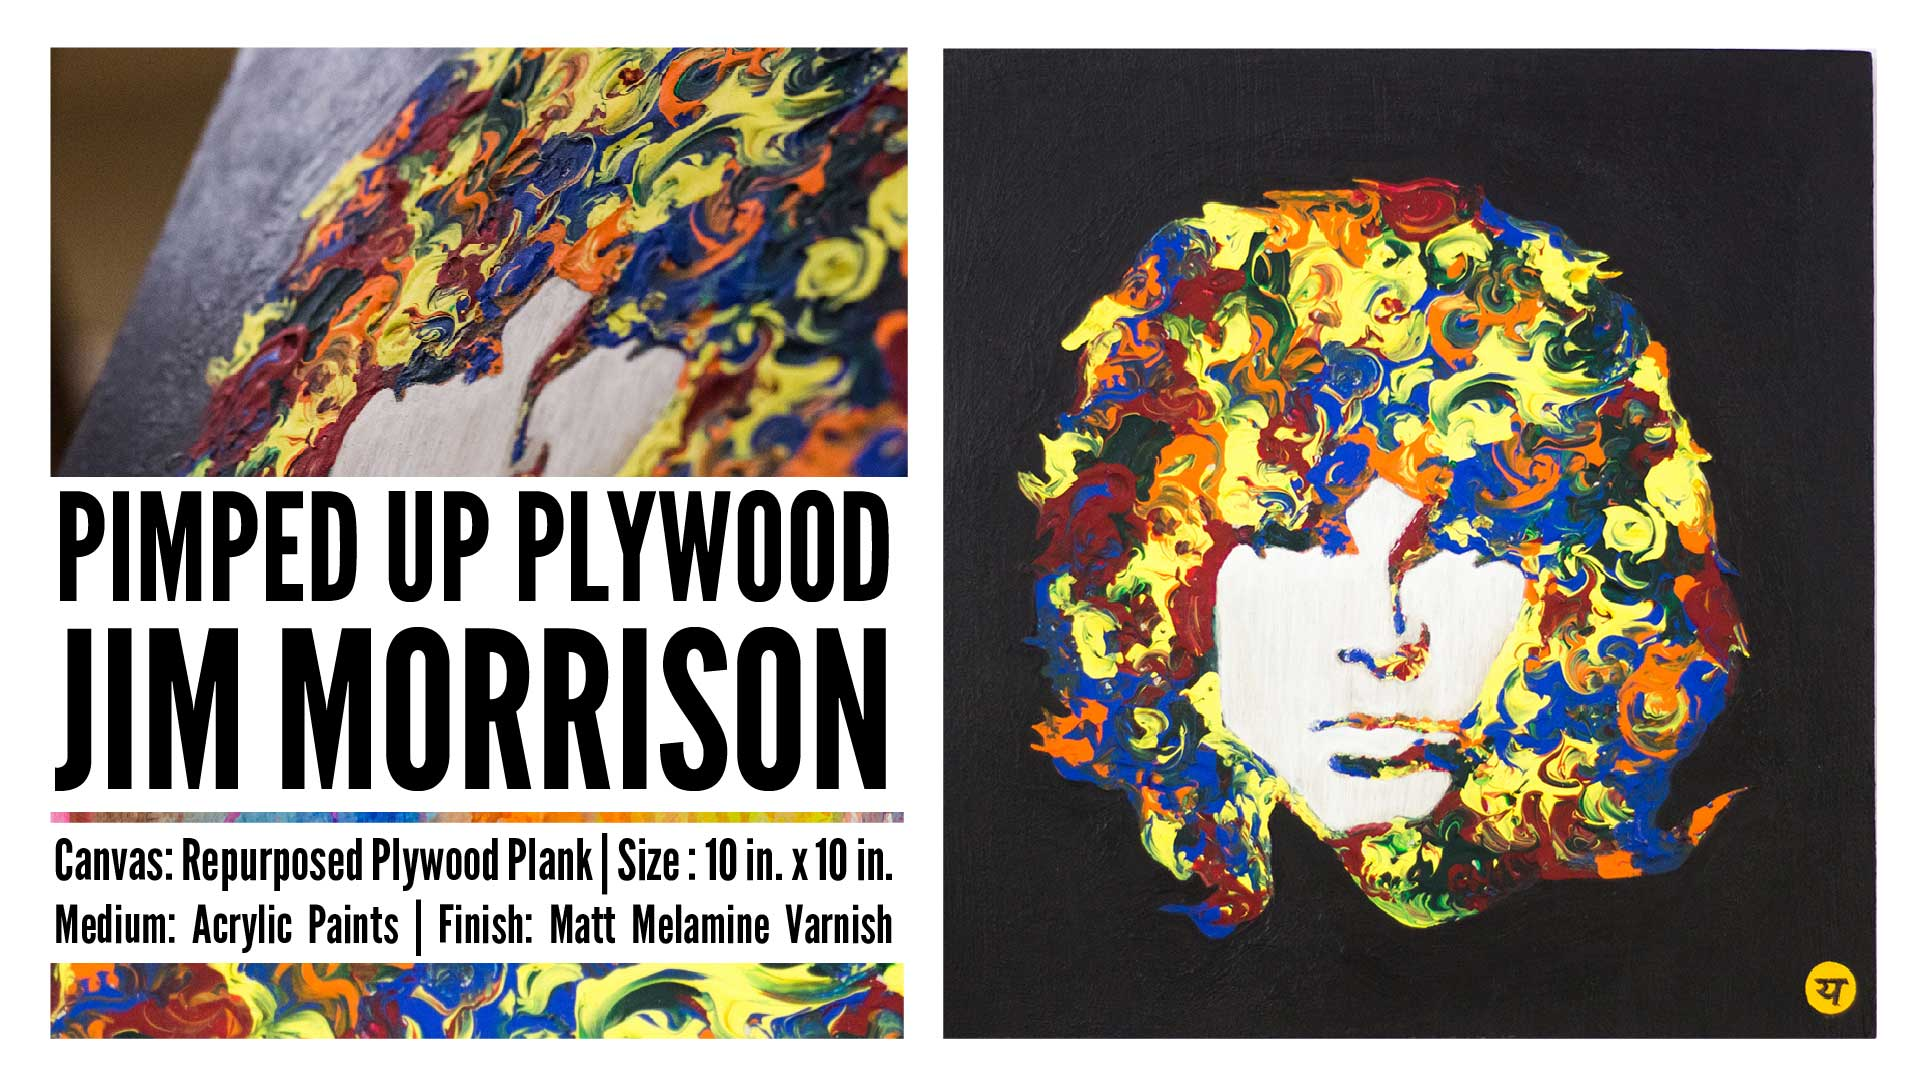 Jim Morrison on Upcycled Plywood